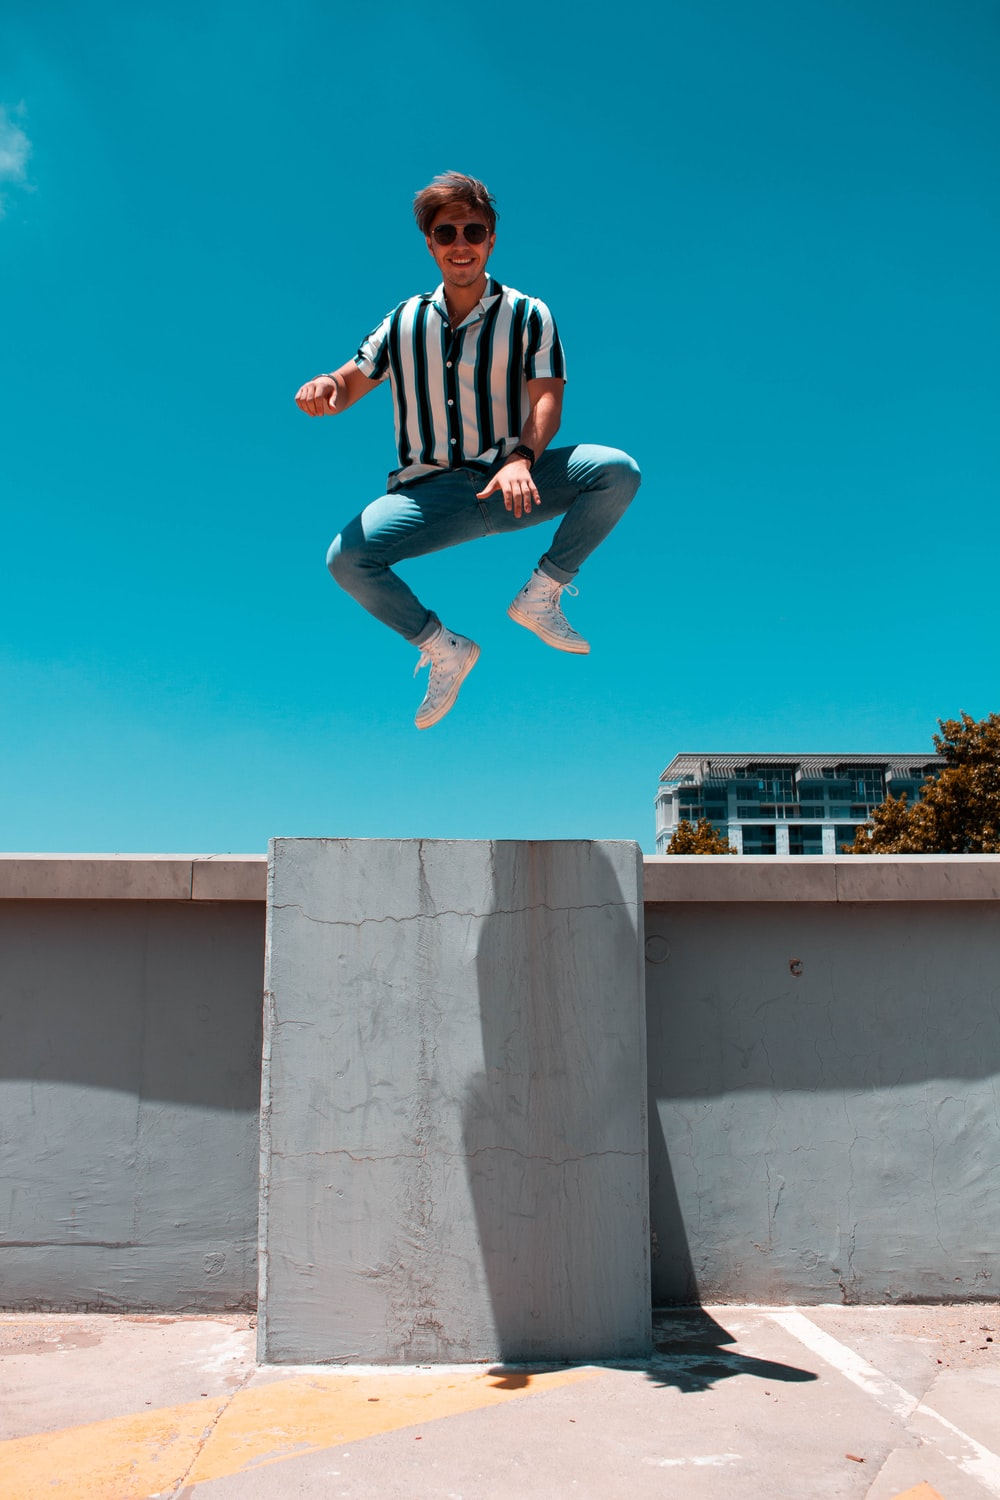 man in mid air above concrete floor and fence during day